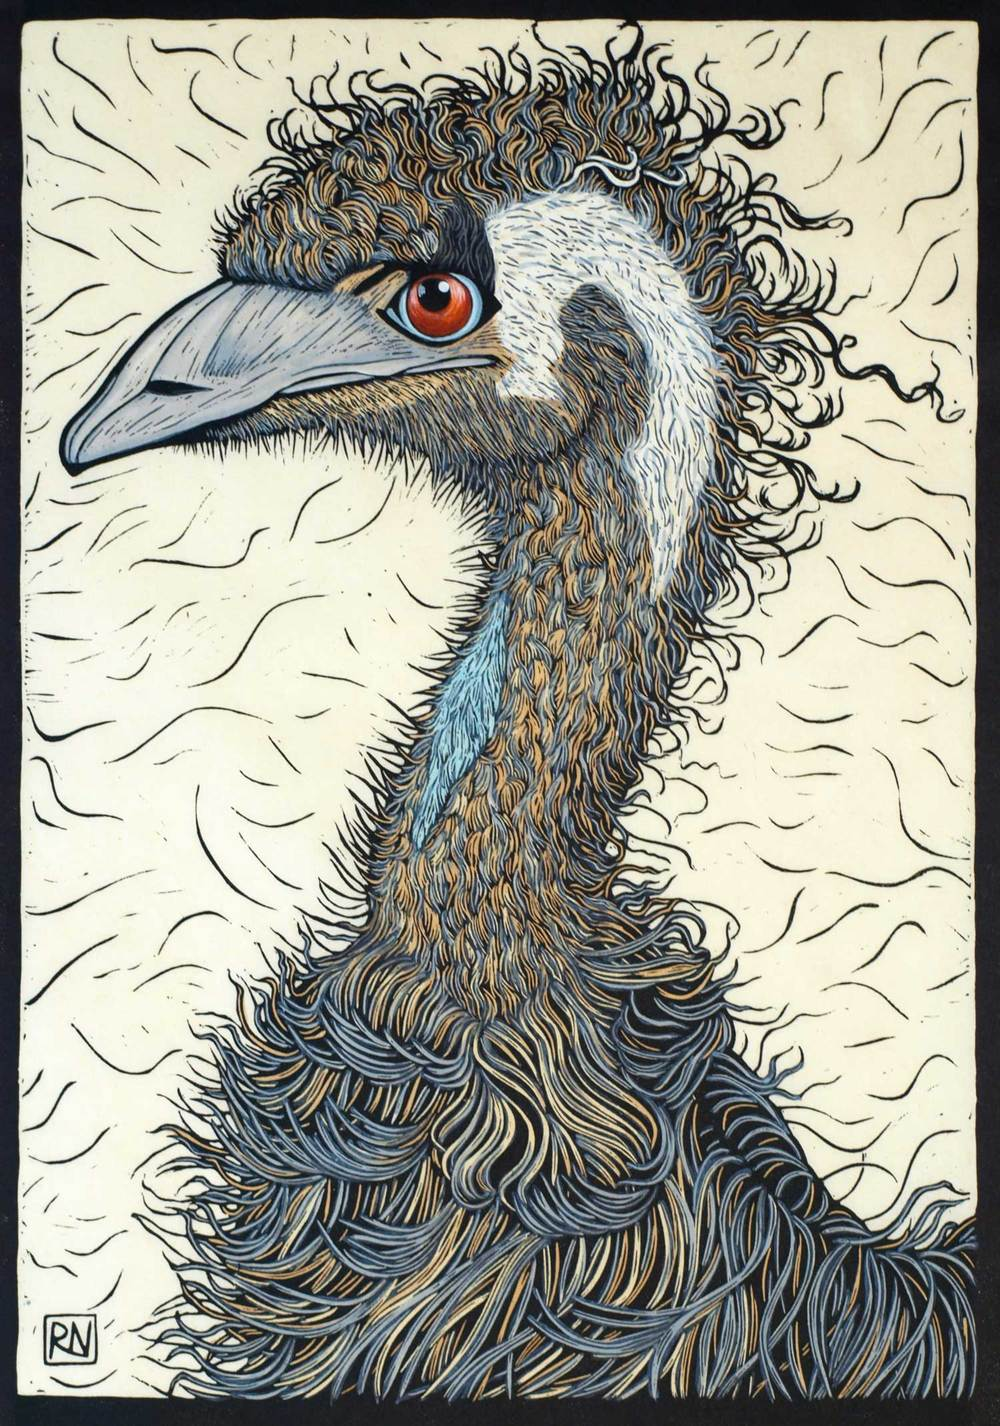 EMU 49 X 34 CM    EDITION OF 50 HAND COLOURED LINOCUT ON HANDMADE JAPANESE PAPER $900